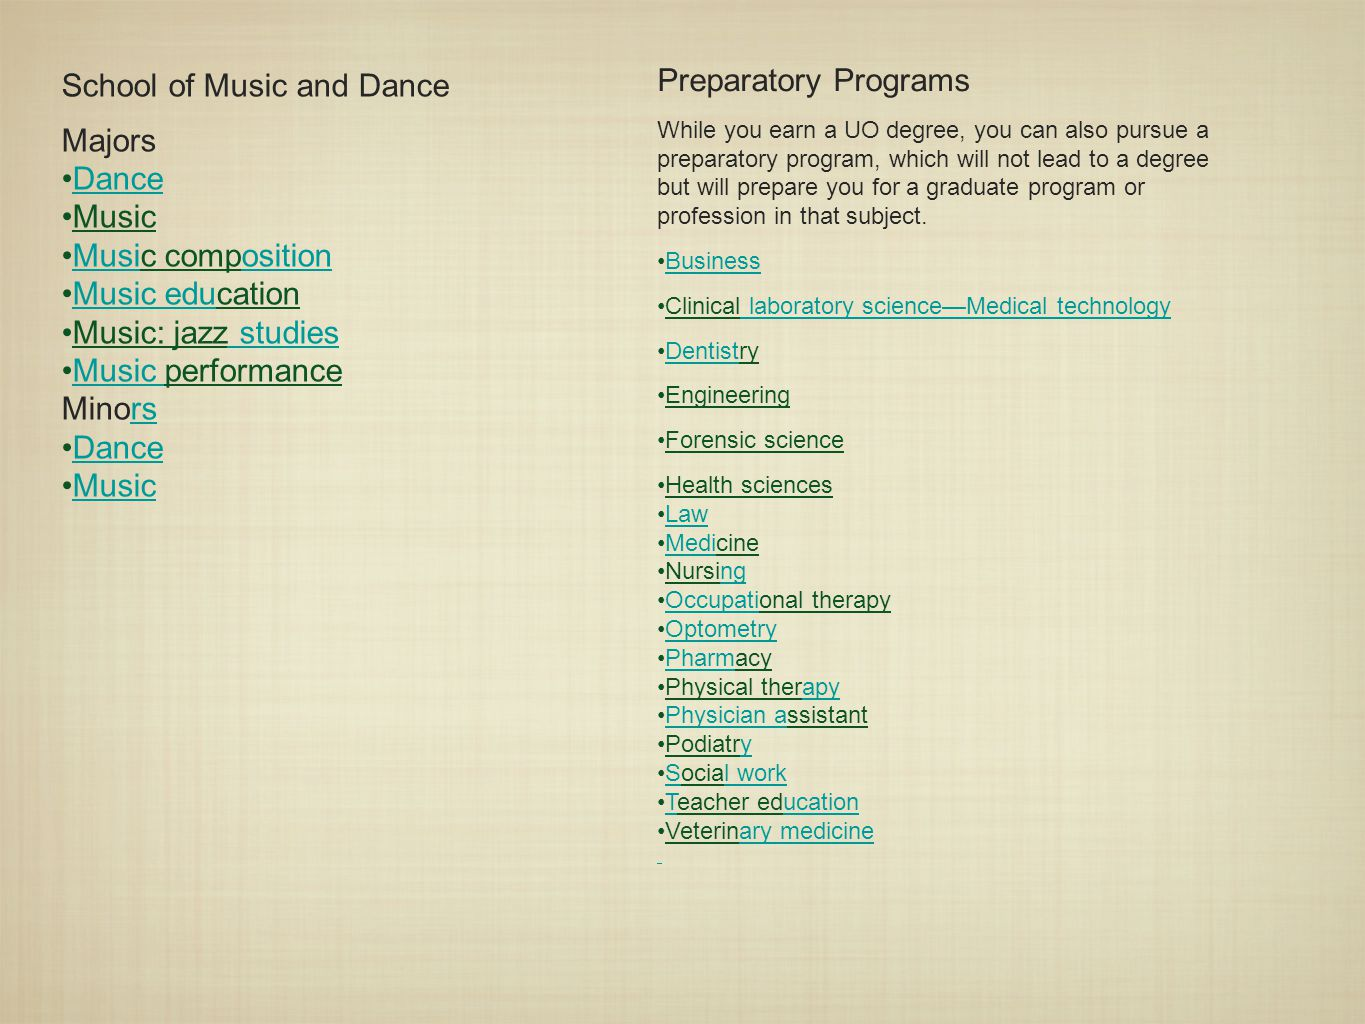 School of Music and Dance Majors Dance Music Music compositionMusiosition Music educationMusic edu Music: jazz studies studies Music performanceMusic Minorsrs Dance Music Preparatory Programs While you earn a UO degree, you can also pursue a preparatory program, which will not lead to a degree but will prepare you for a graduate program or profession in that subject.